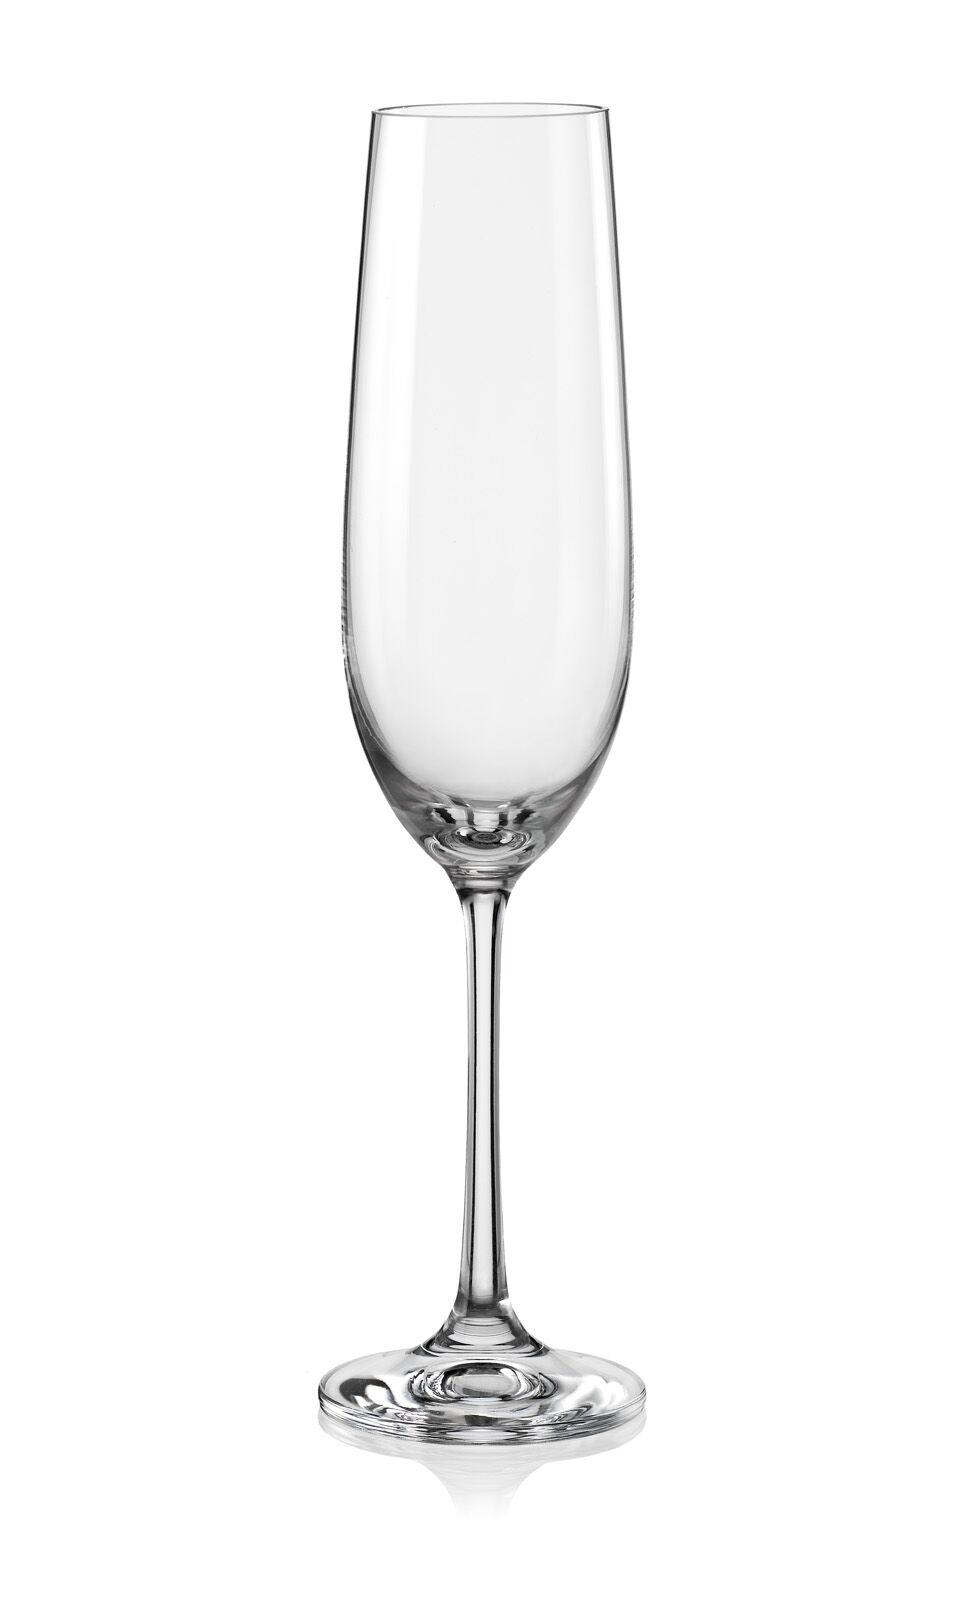 Bohemia Crystal Viola Champagne Flute 190ml set of 6 pcs Bar Glassware in Transparent Colour by Bohemia